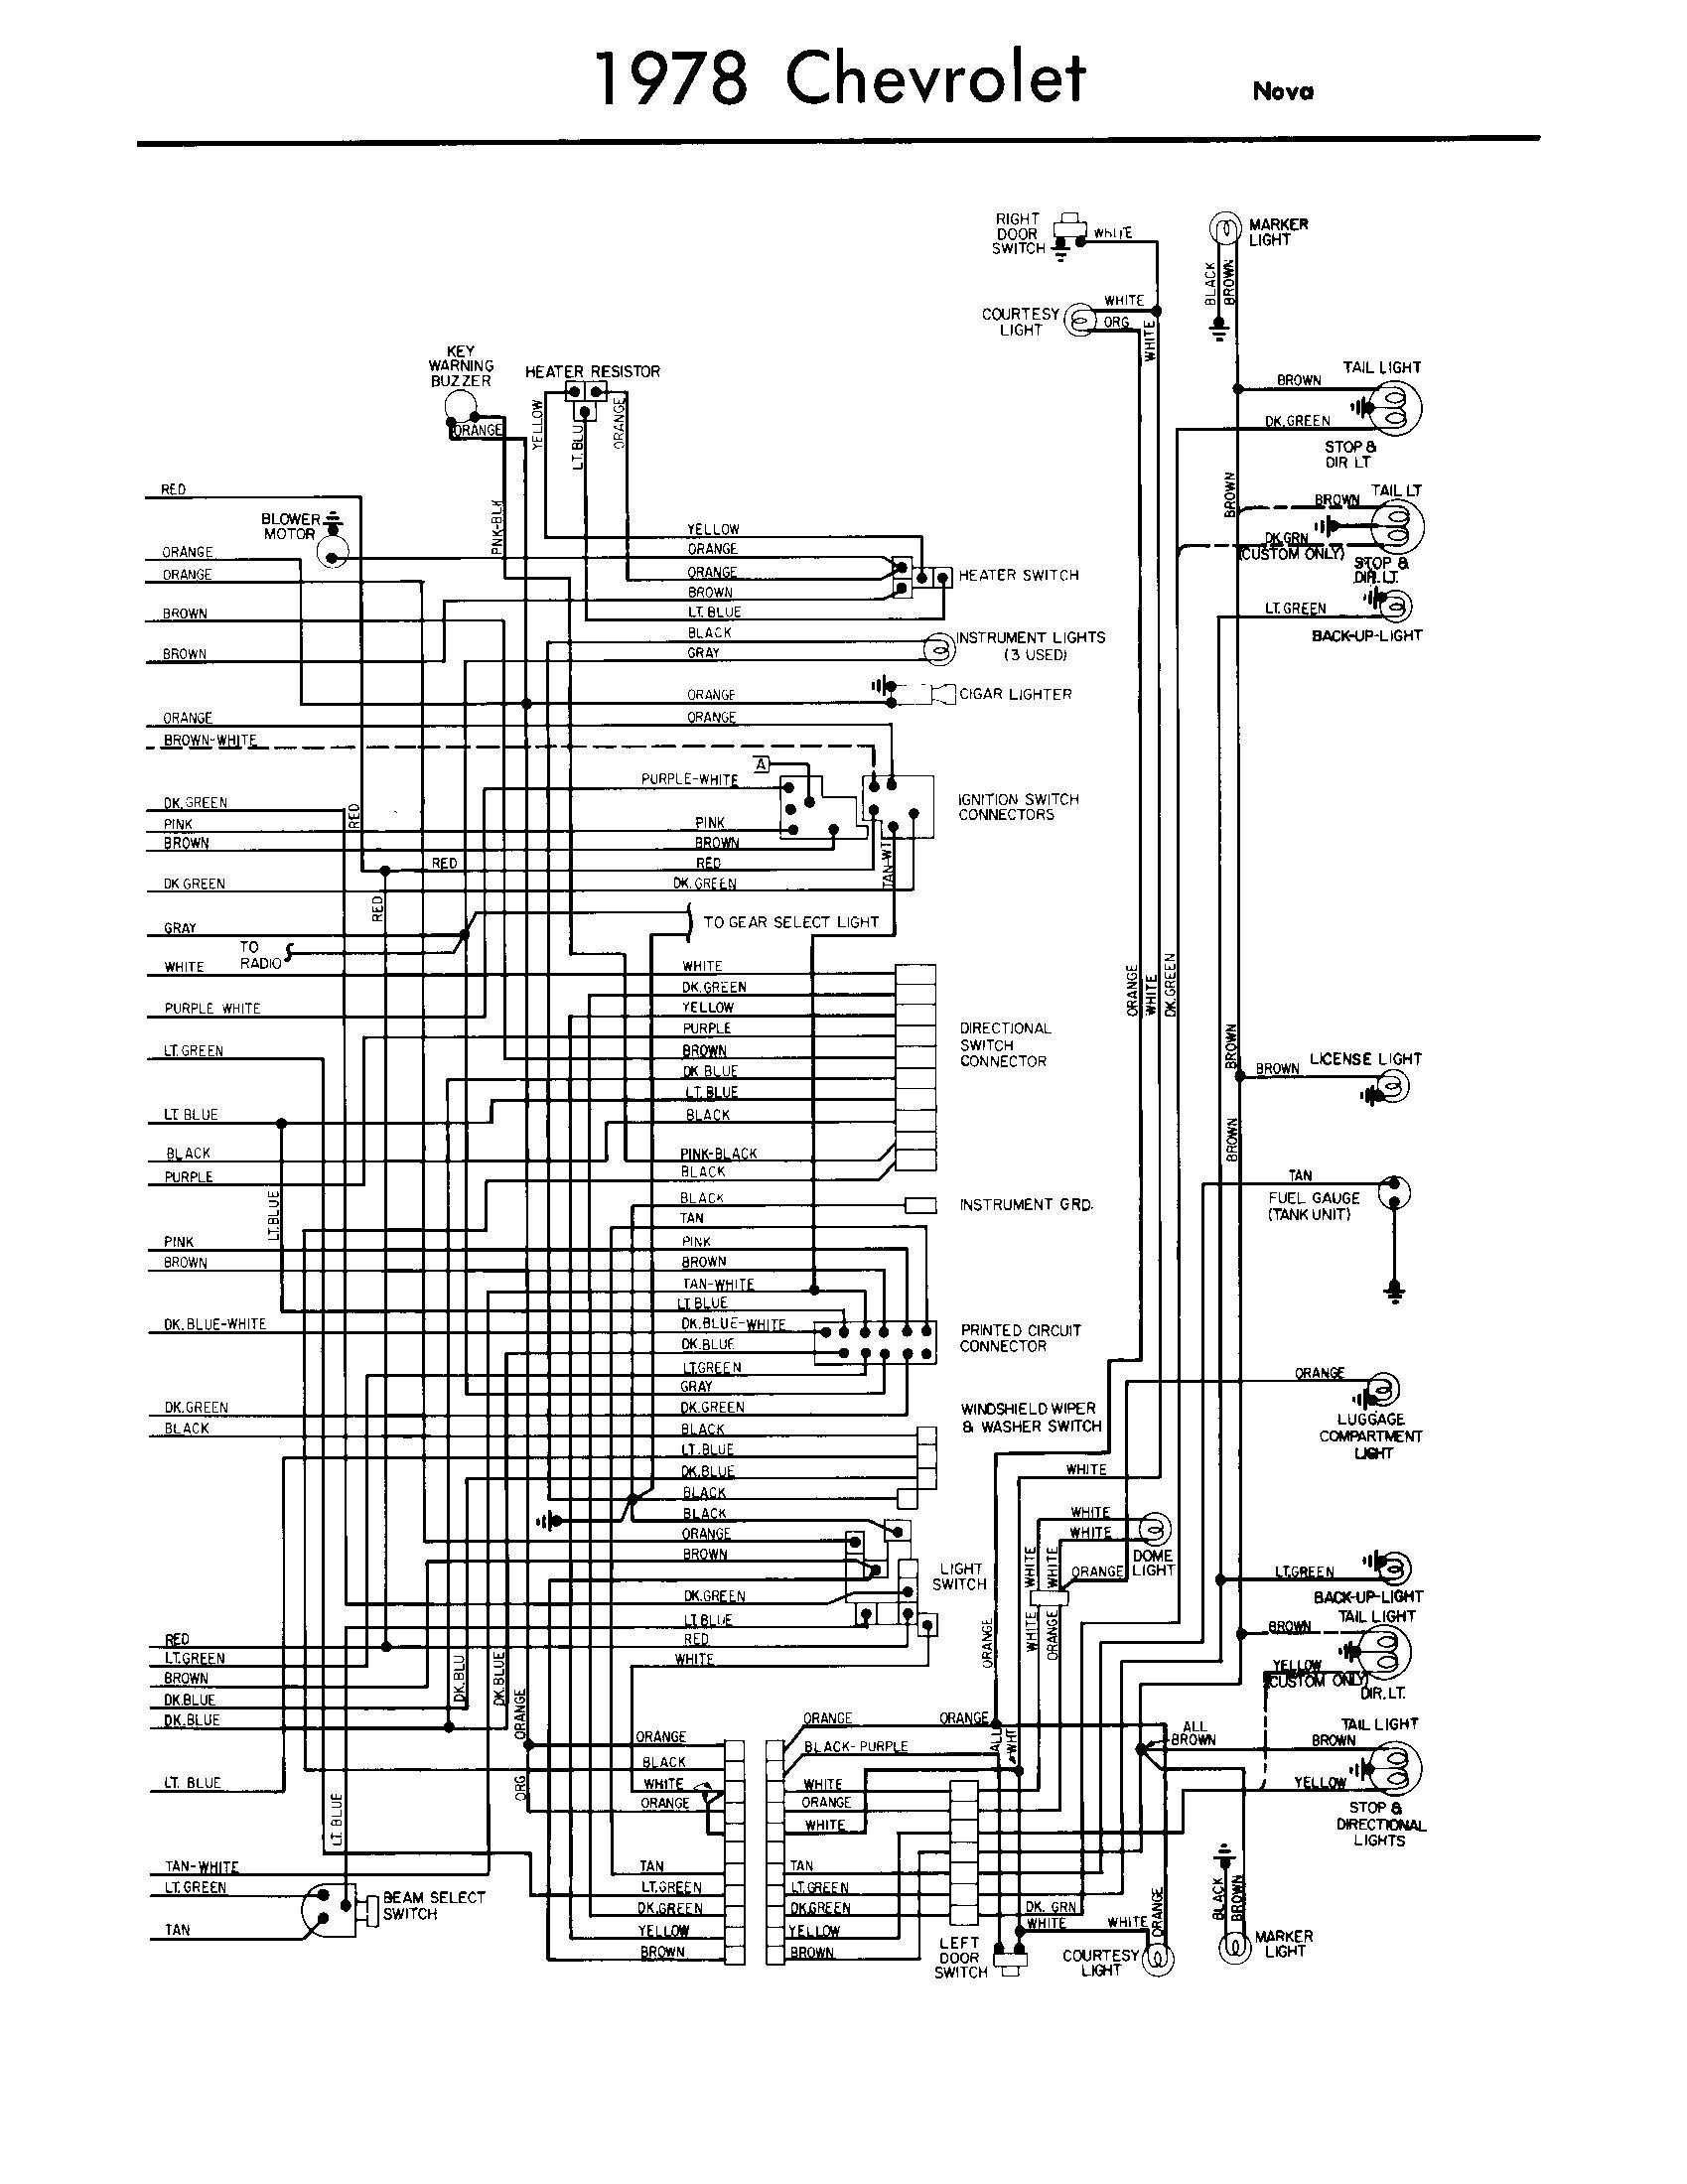 1969 Corvette Wiring Diagram Coil - Wiring Diagrams Show on